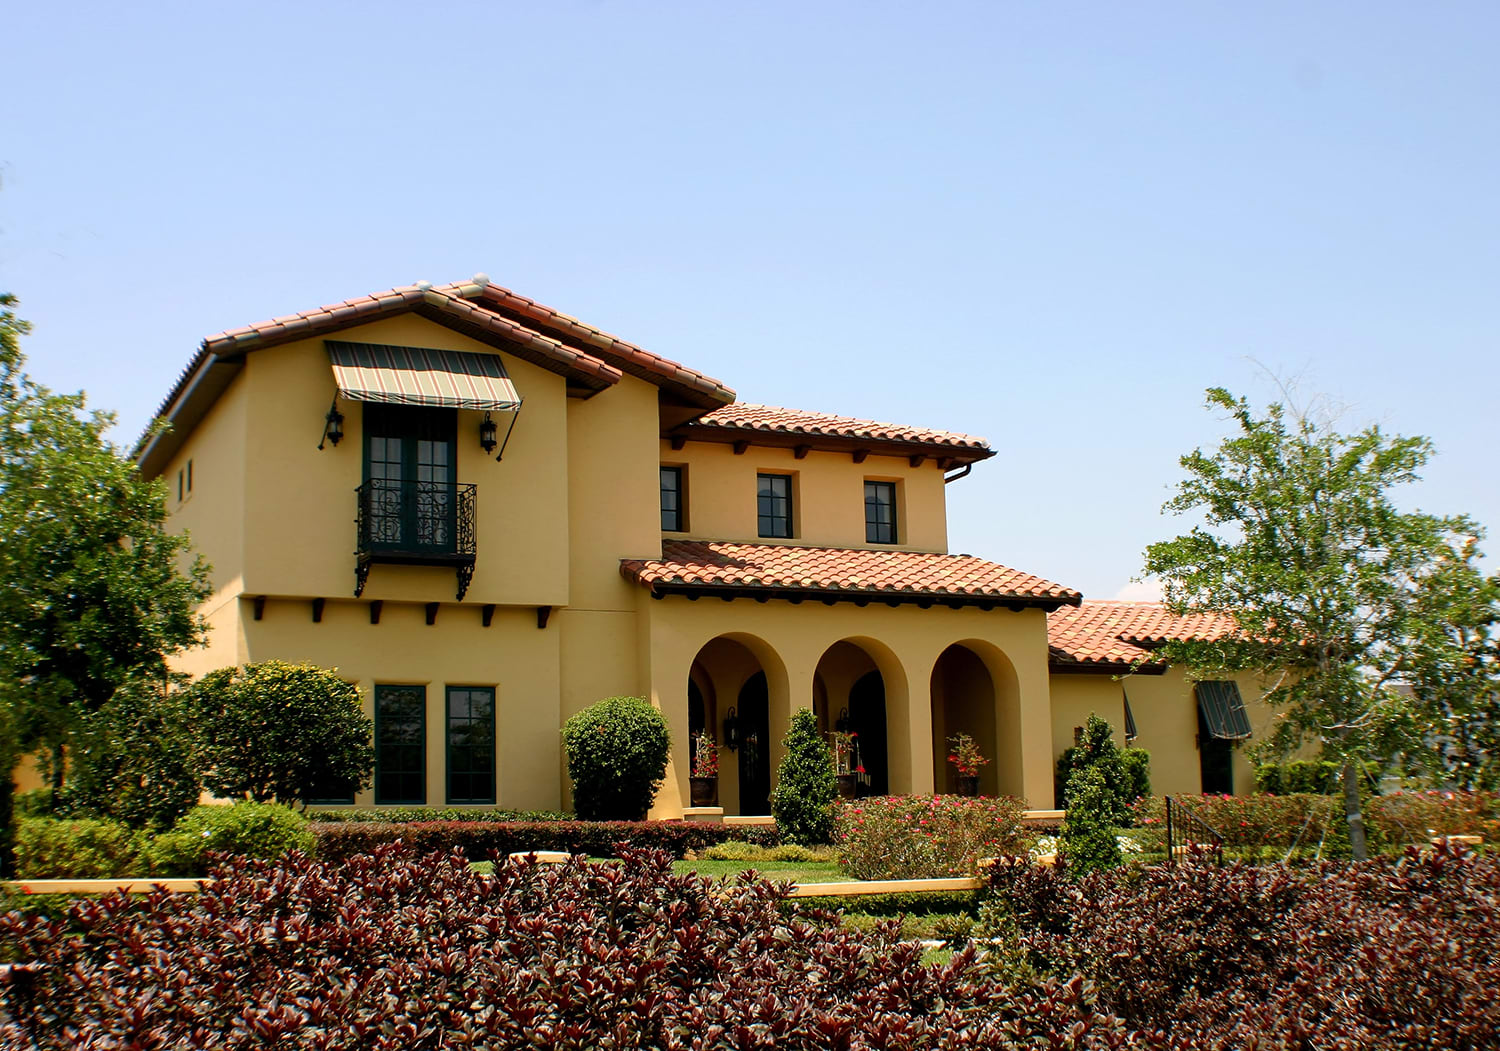 Spanish Style Architecture in Beverly Hills